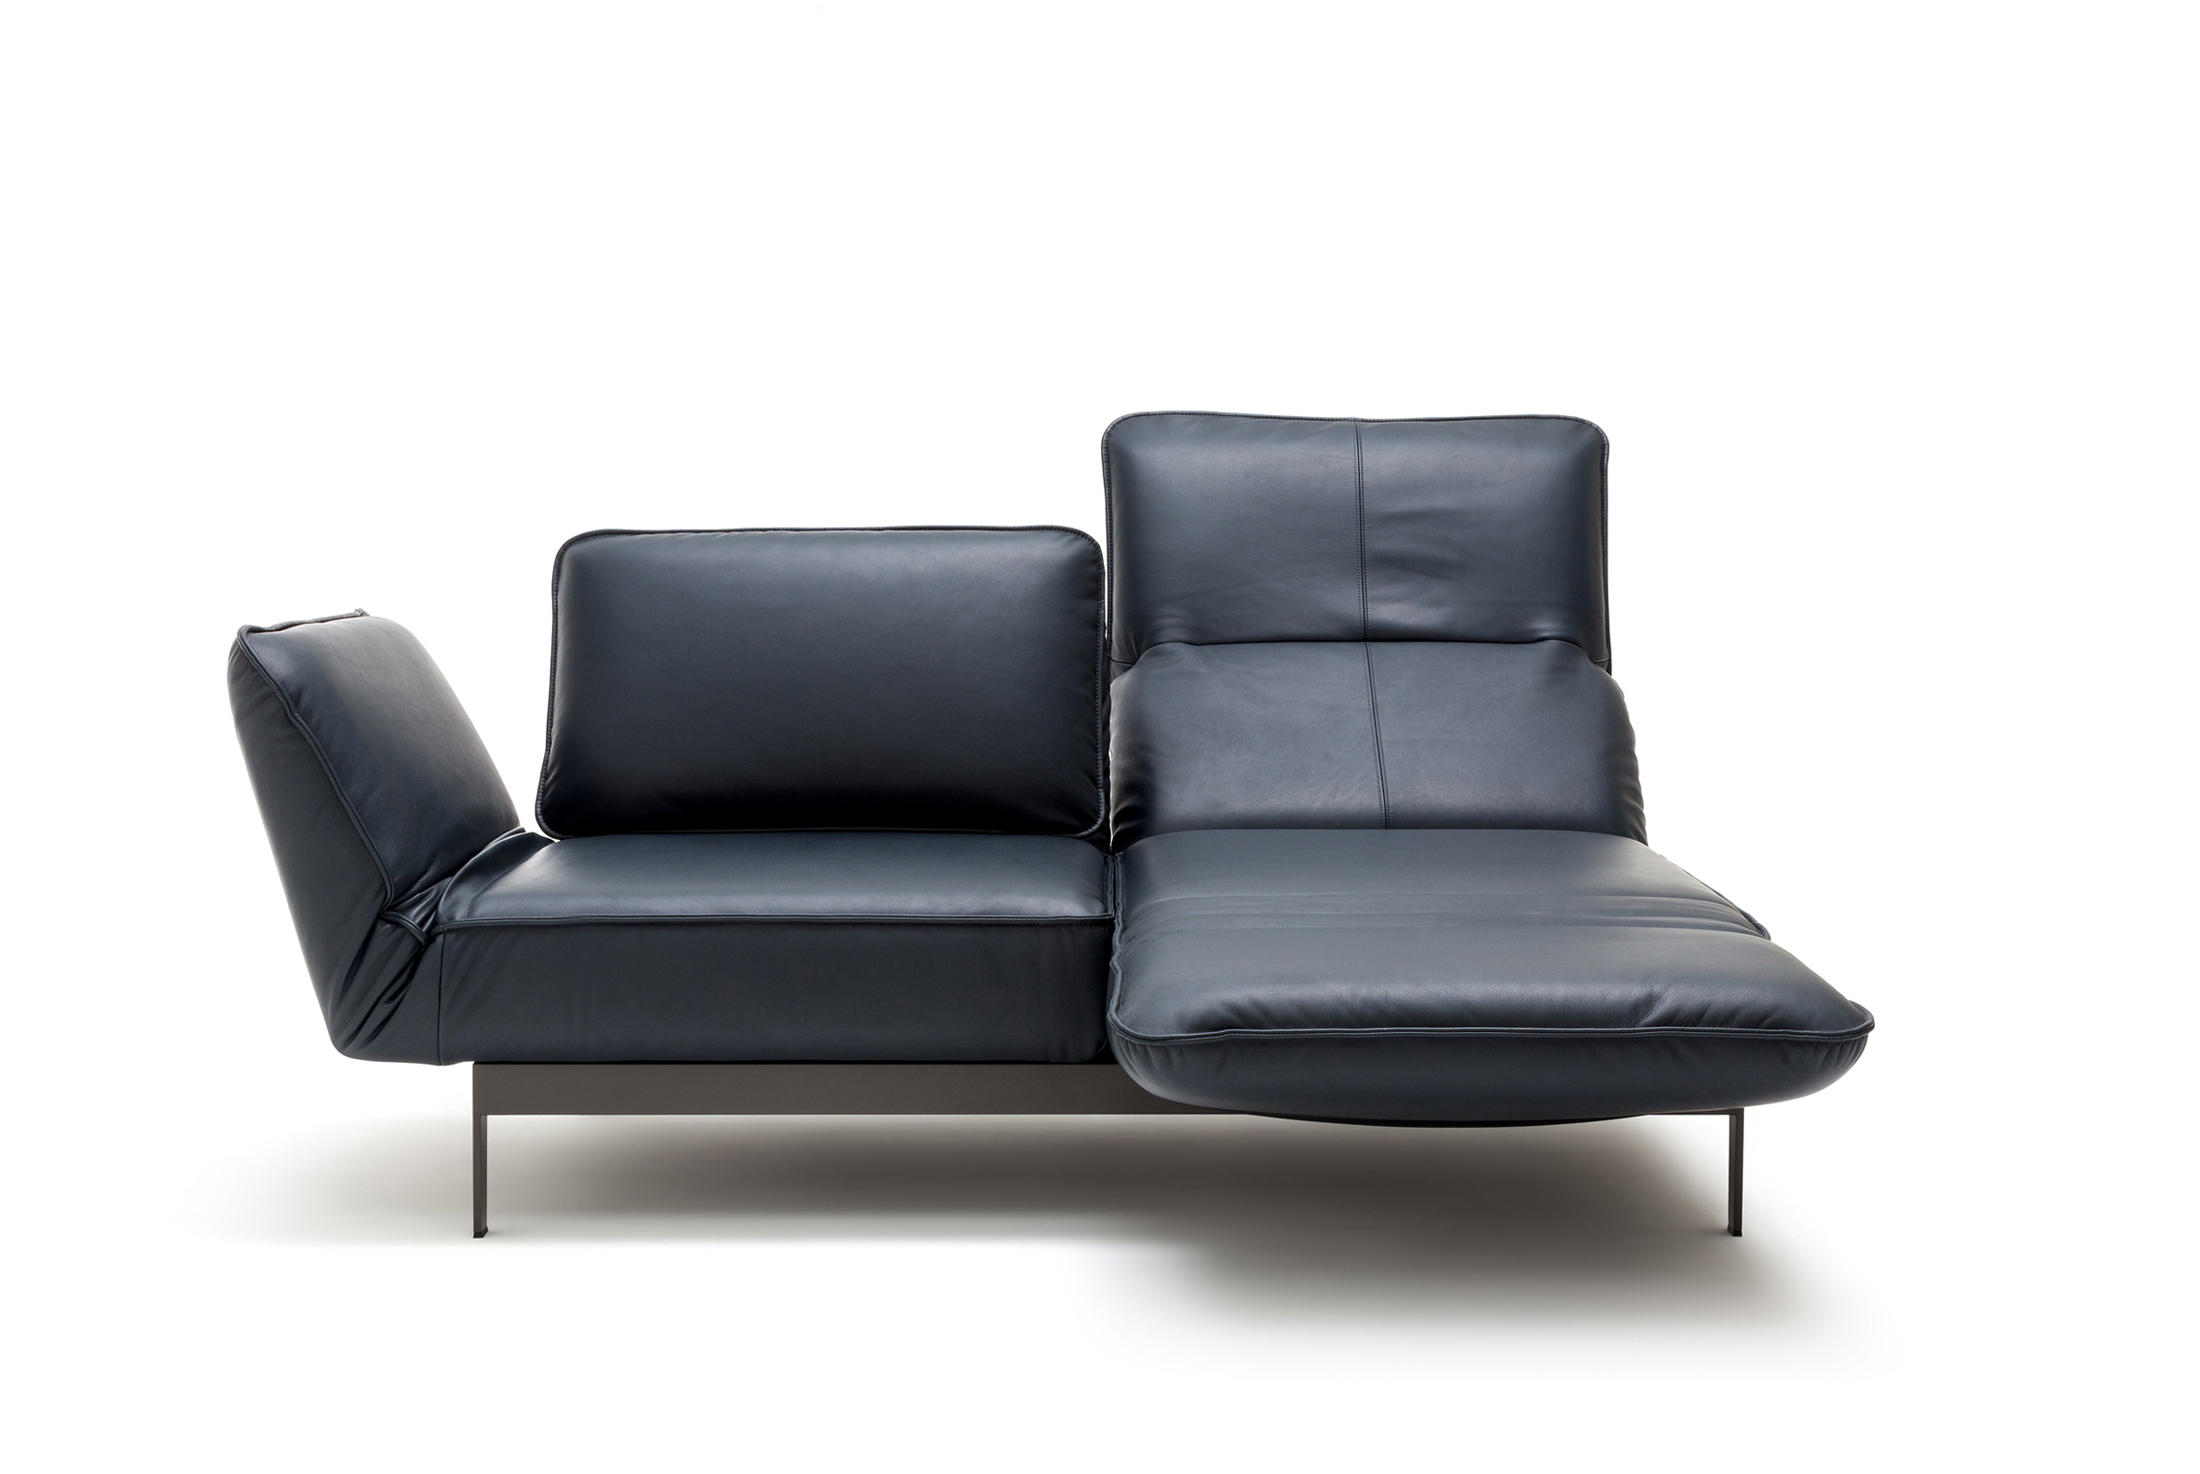 Rolf Benz Nova Rolf Benz 386 Mera Sofas From Rolf Benz Architonic